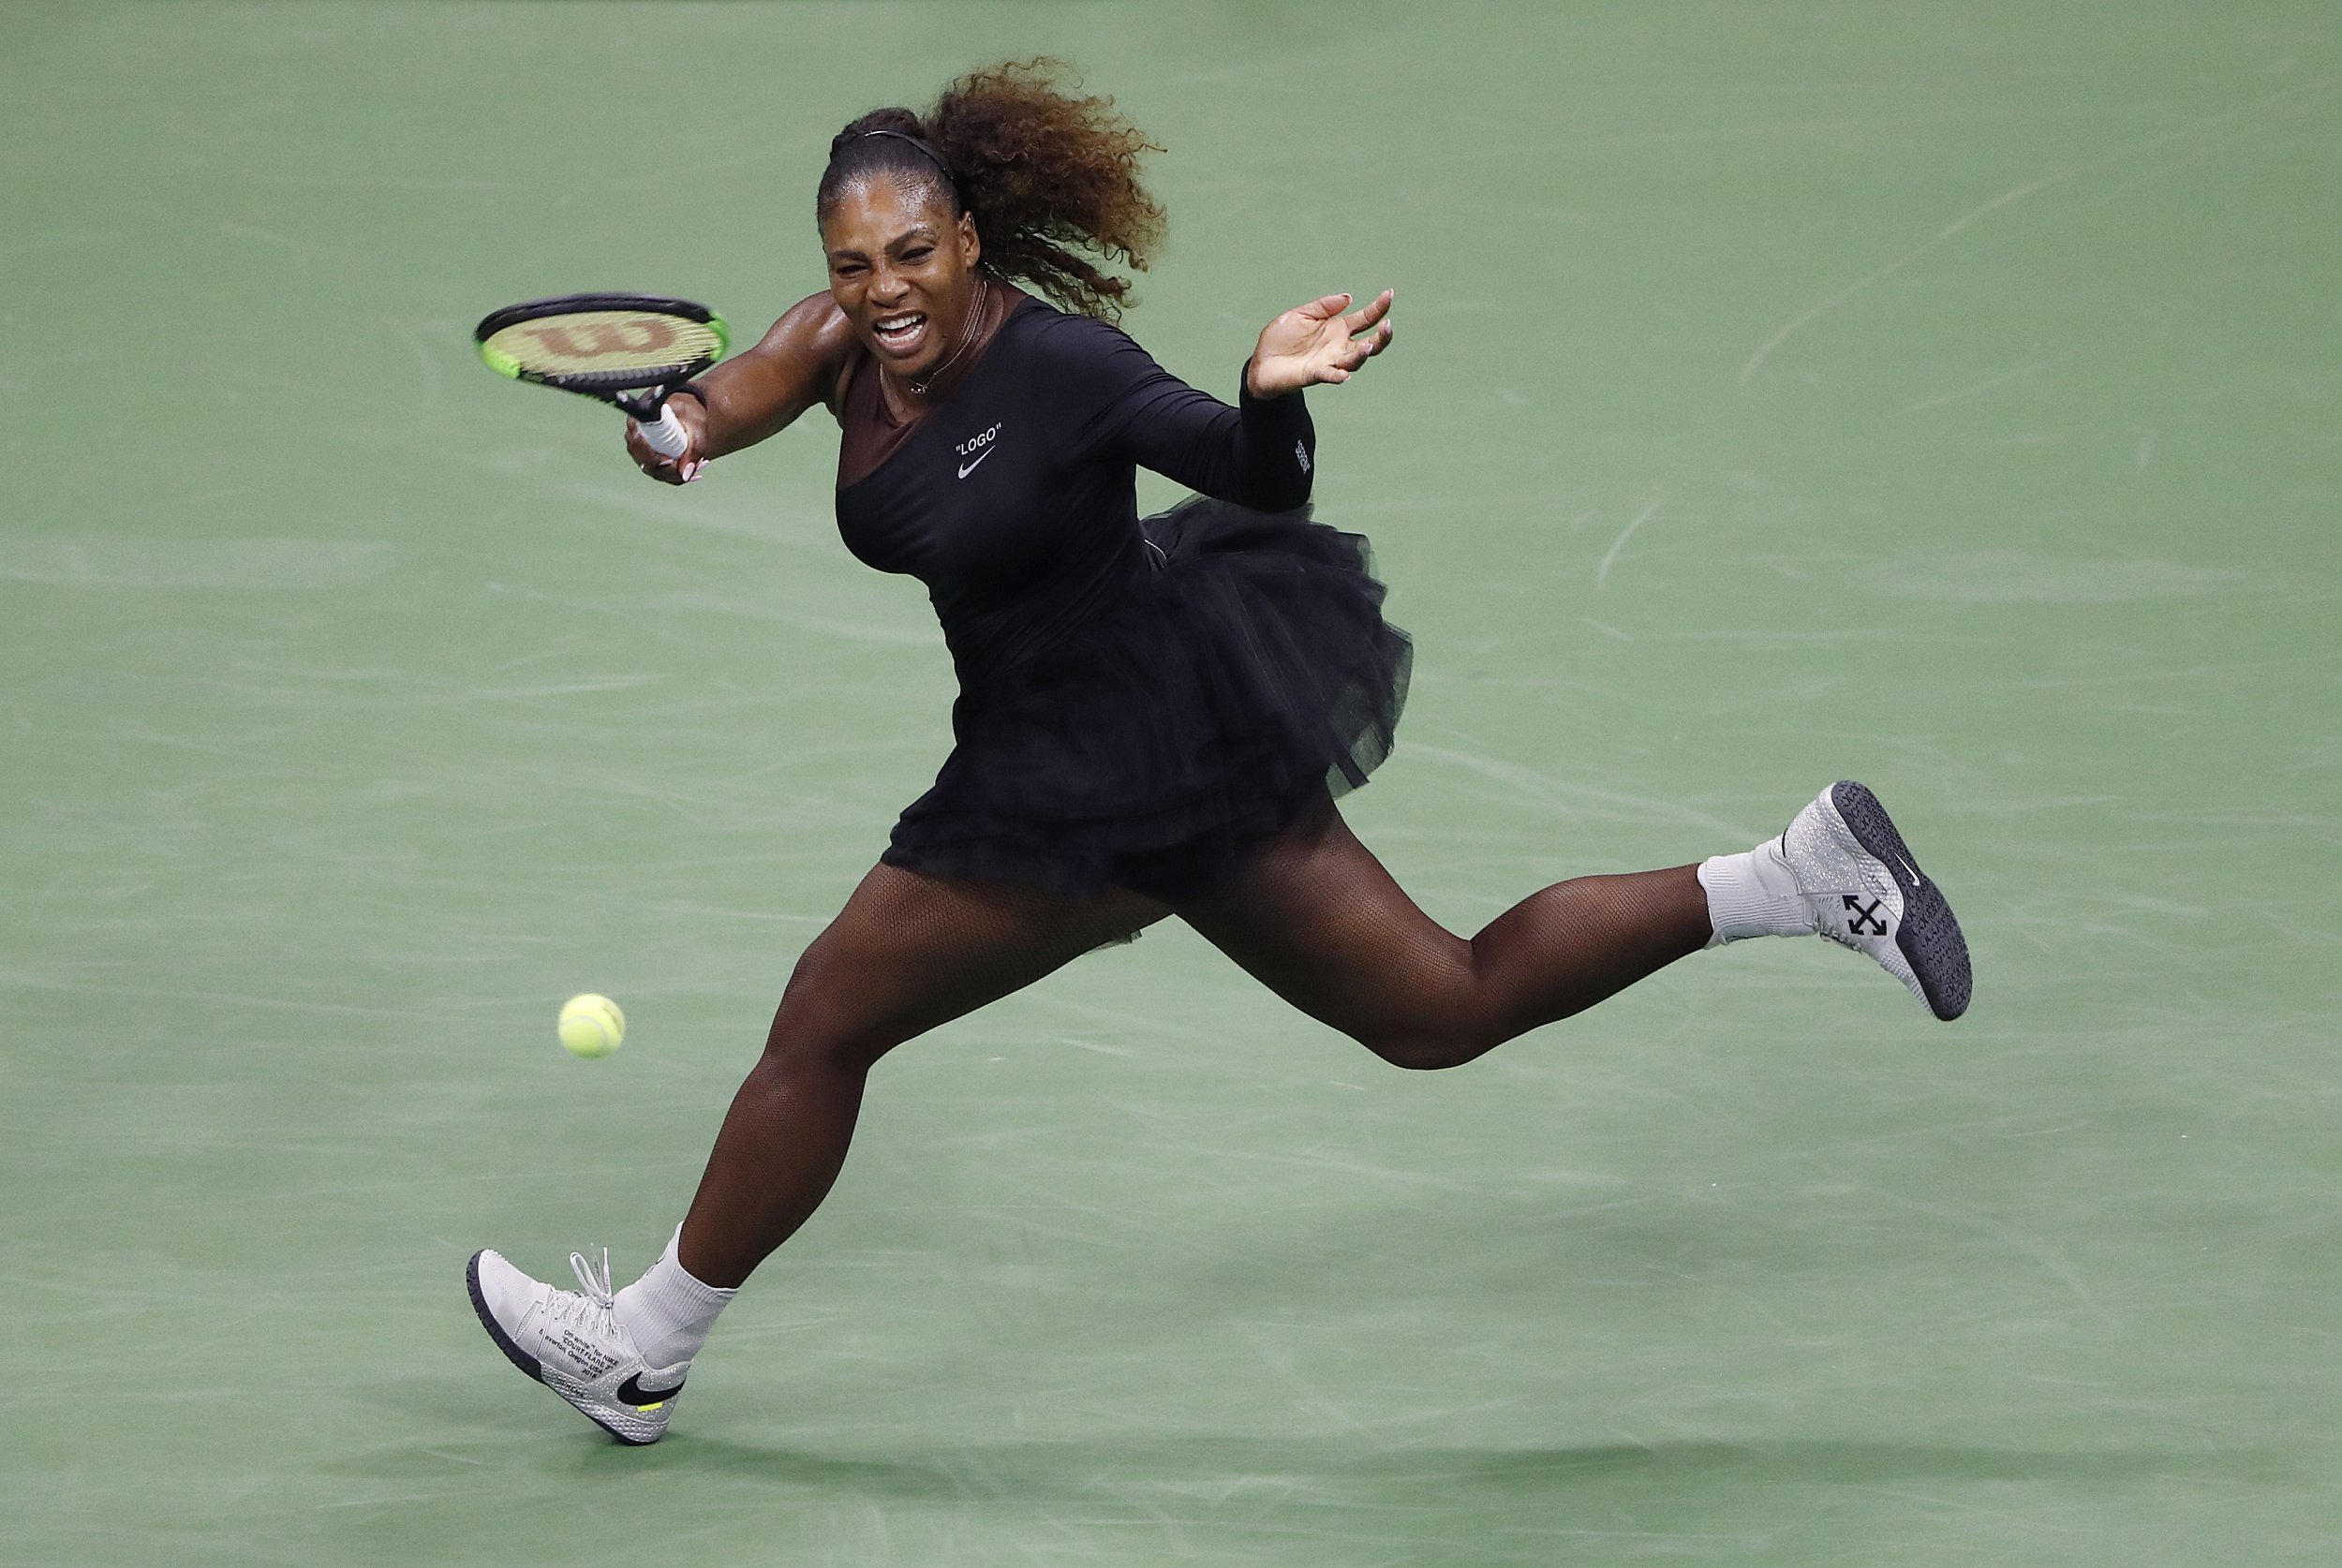 epa06977583 Serena Williams of the US hits a return to Magda Linette of Poland on the first day of the US Open Tennis Championships the USTA National Tennis Center in Flushing Meadows, New York, USA, 27 August 2018. The US Open runs from 27 August through 09 September. EPA/JASON SZENES *** Local Caption *** 53000073